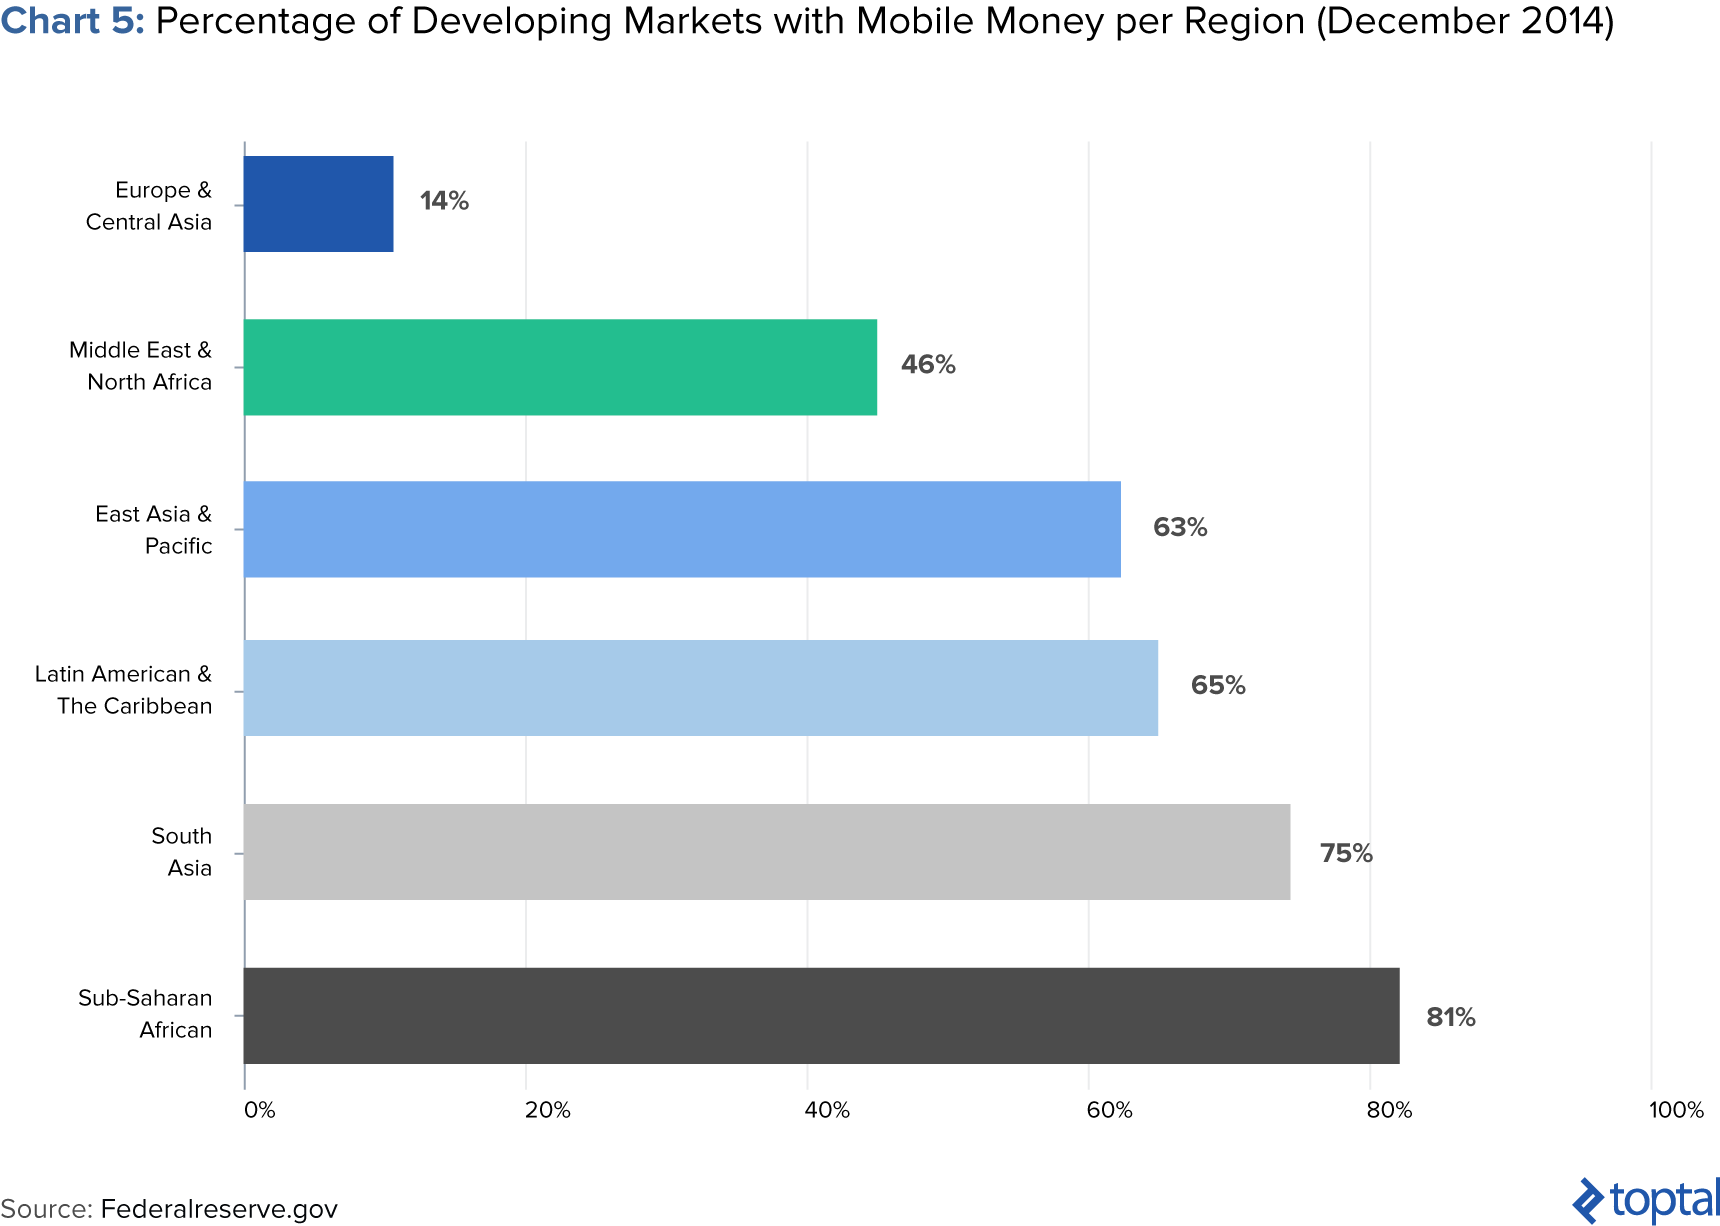 Image of Chart 5: Percentage of Developing Markets with Mobile Money per Region (December 2014)